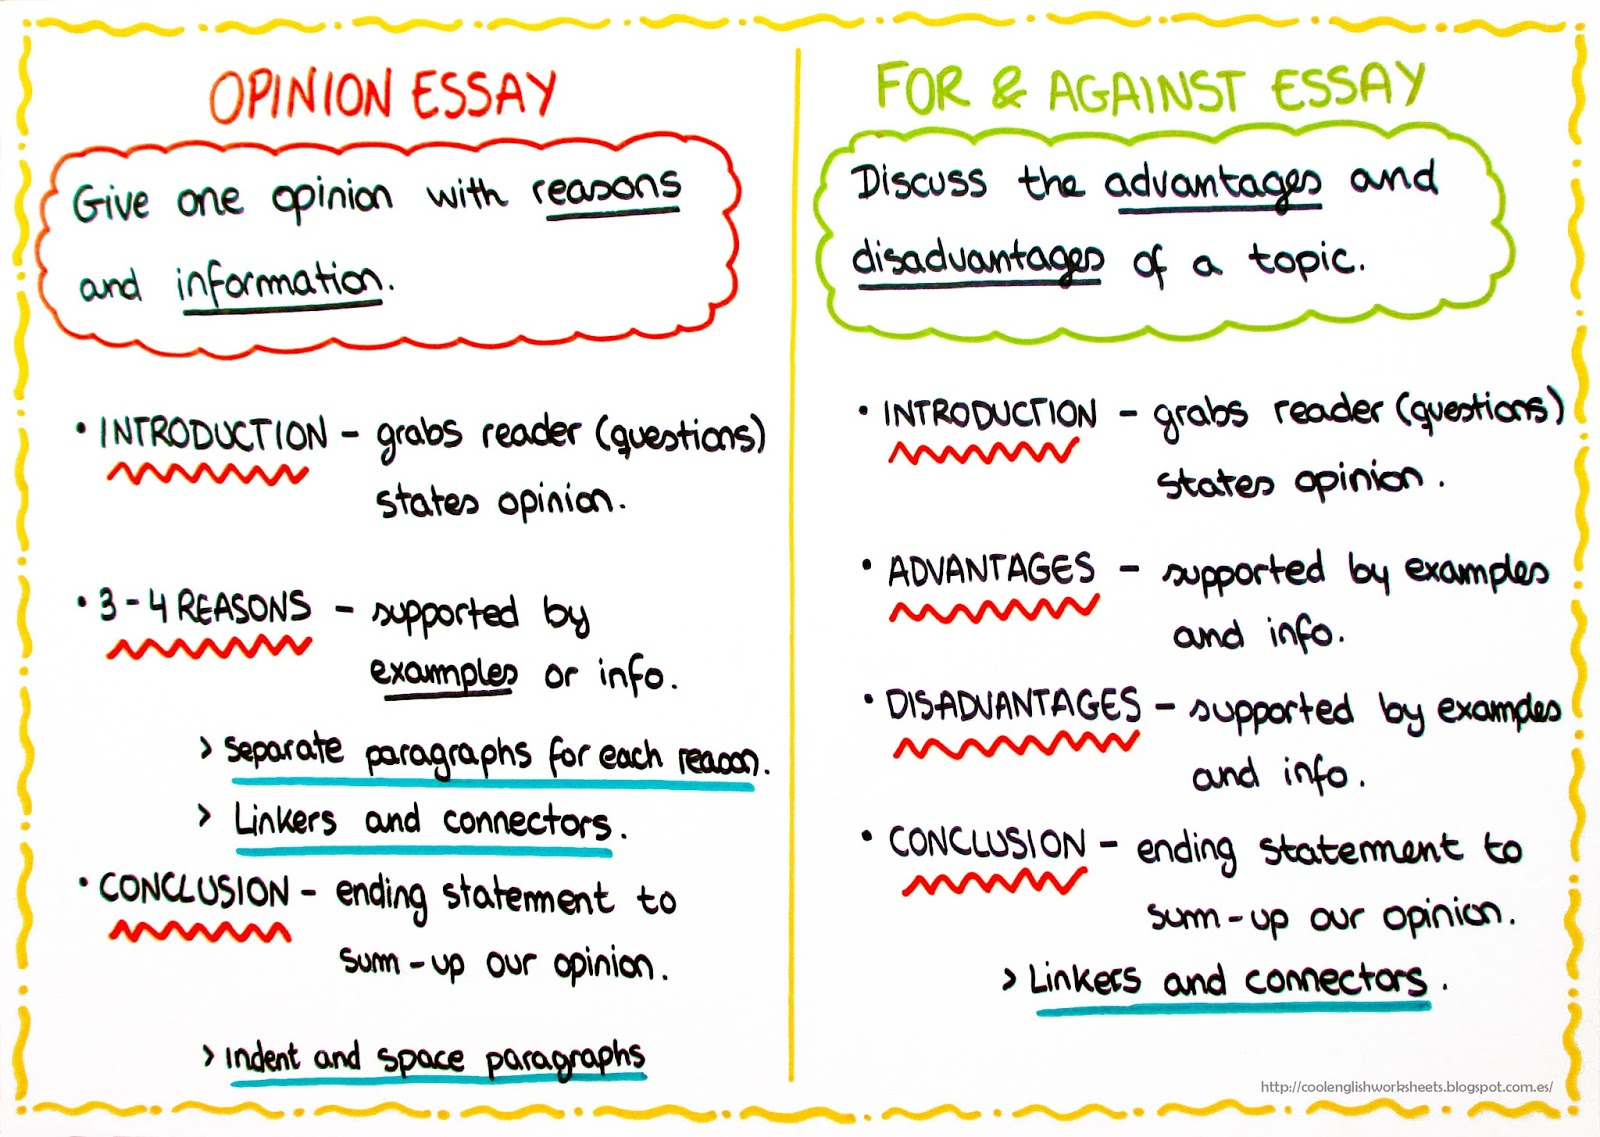 persuasive essay topics for 8th graders List of 100 persuasive essay and speech topics includes topics grouped by college, middle school, high school, funny topics click for the list.